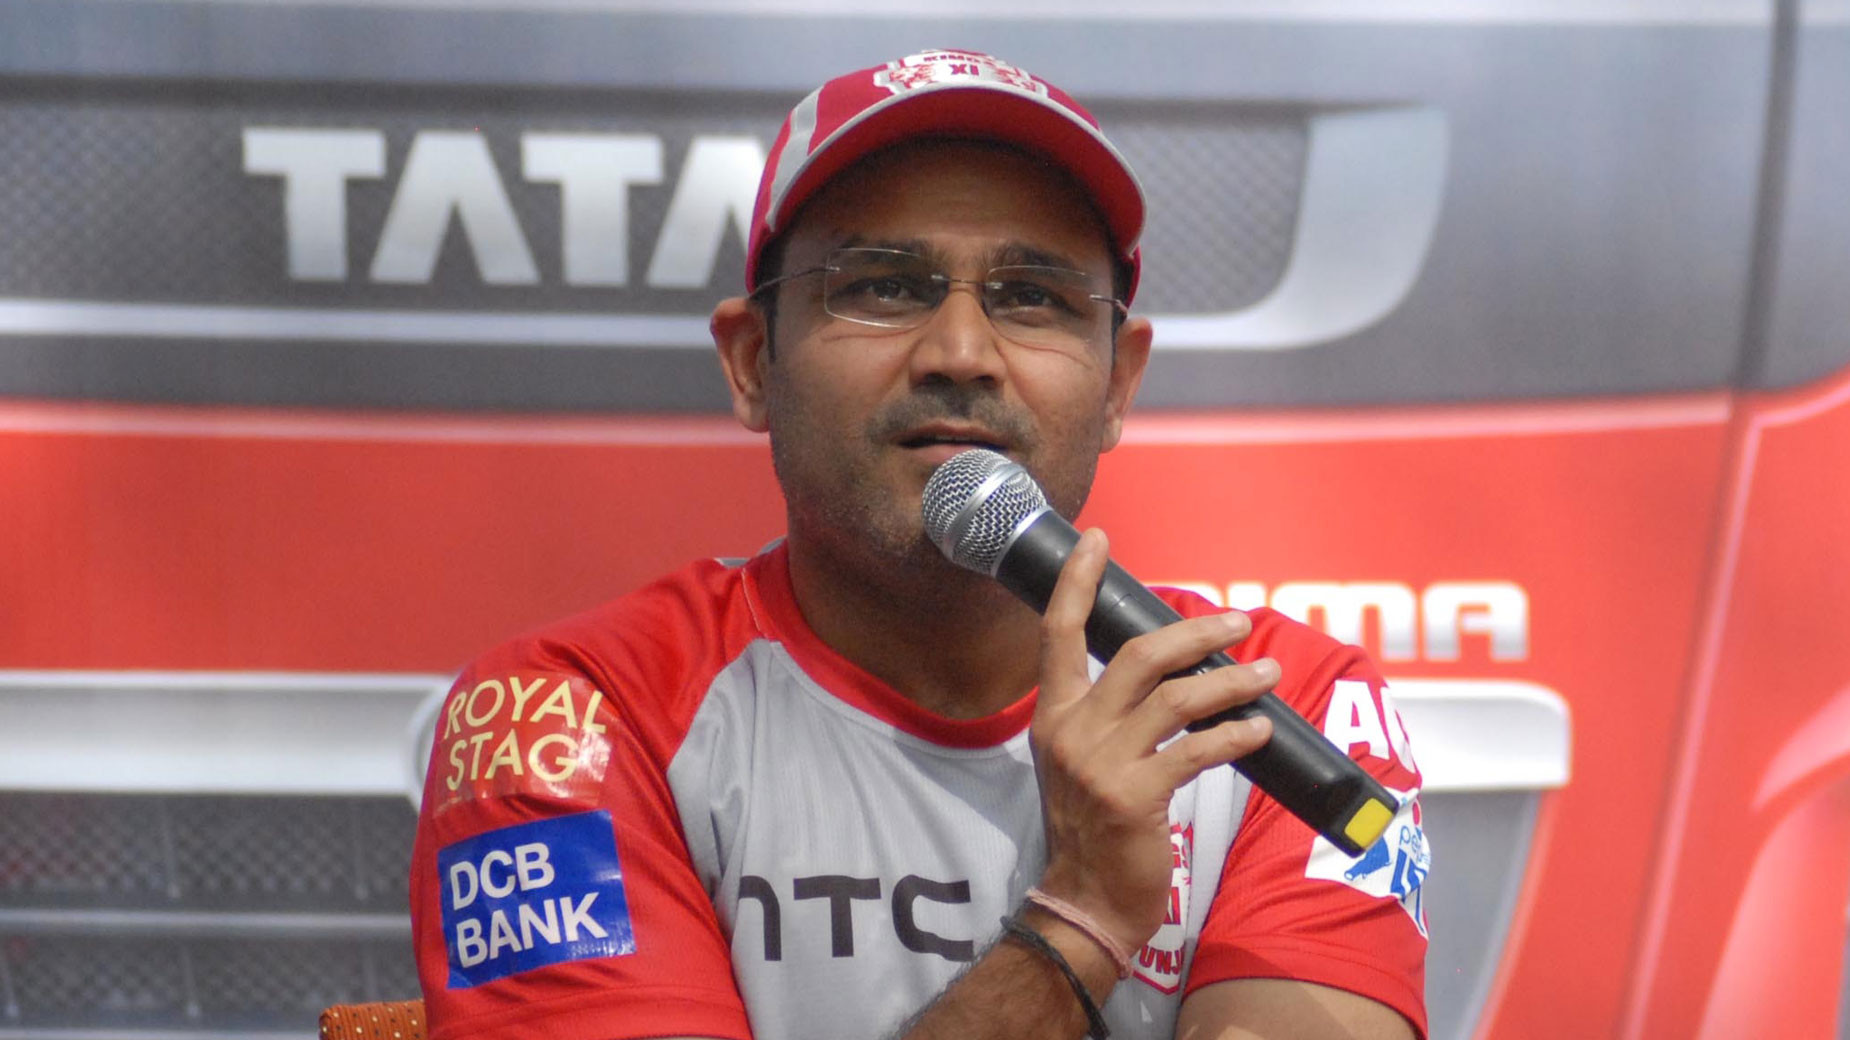 IPL: Virender Sehwag ends his association with Kings XI Punjab